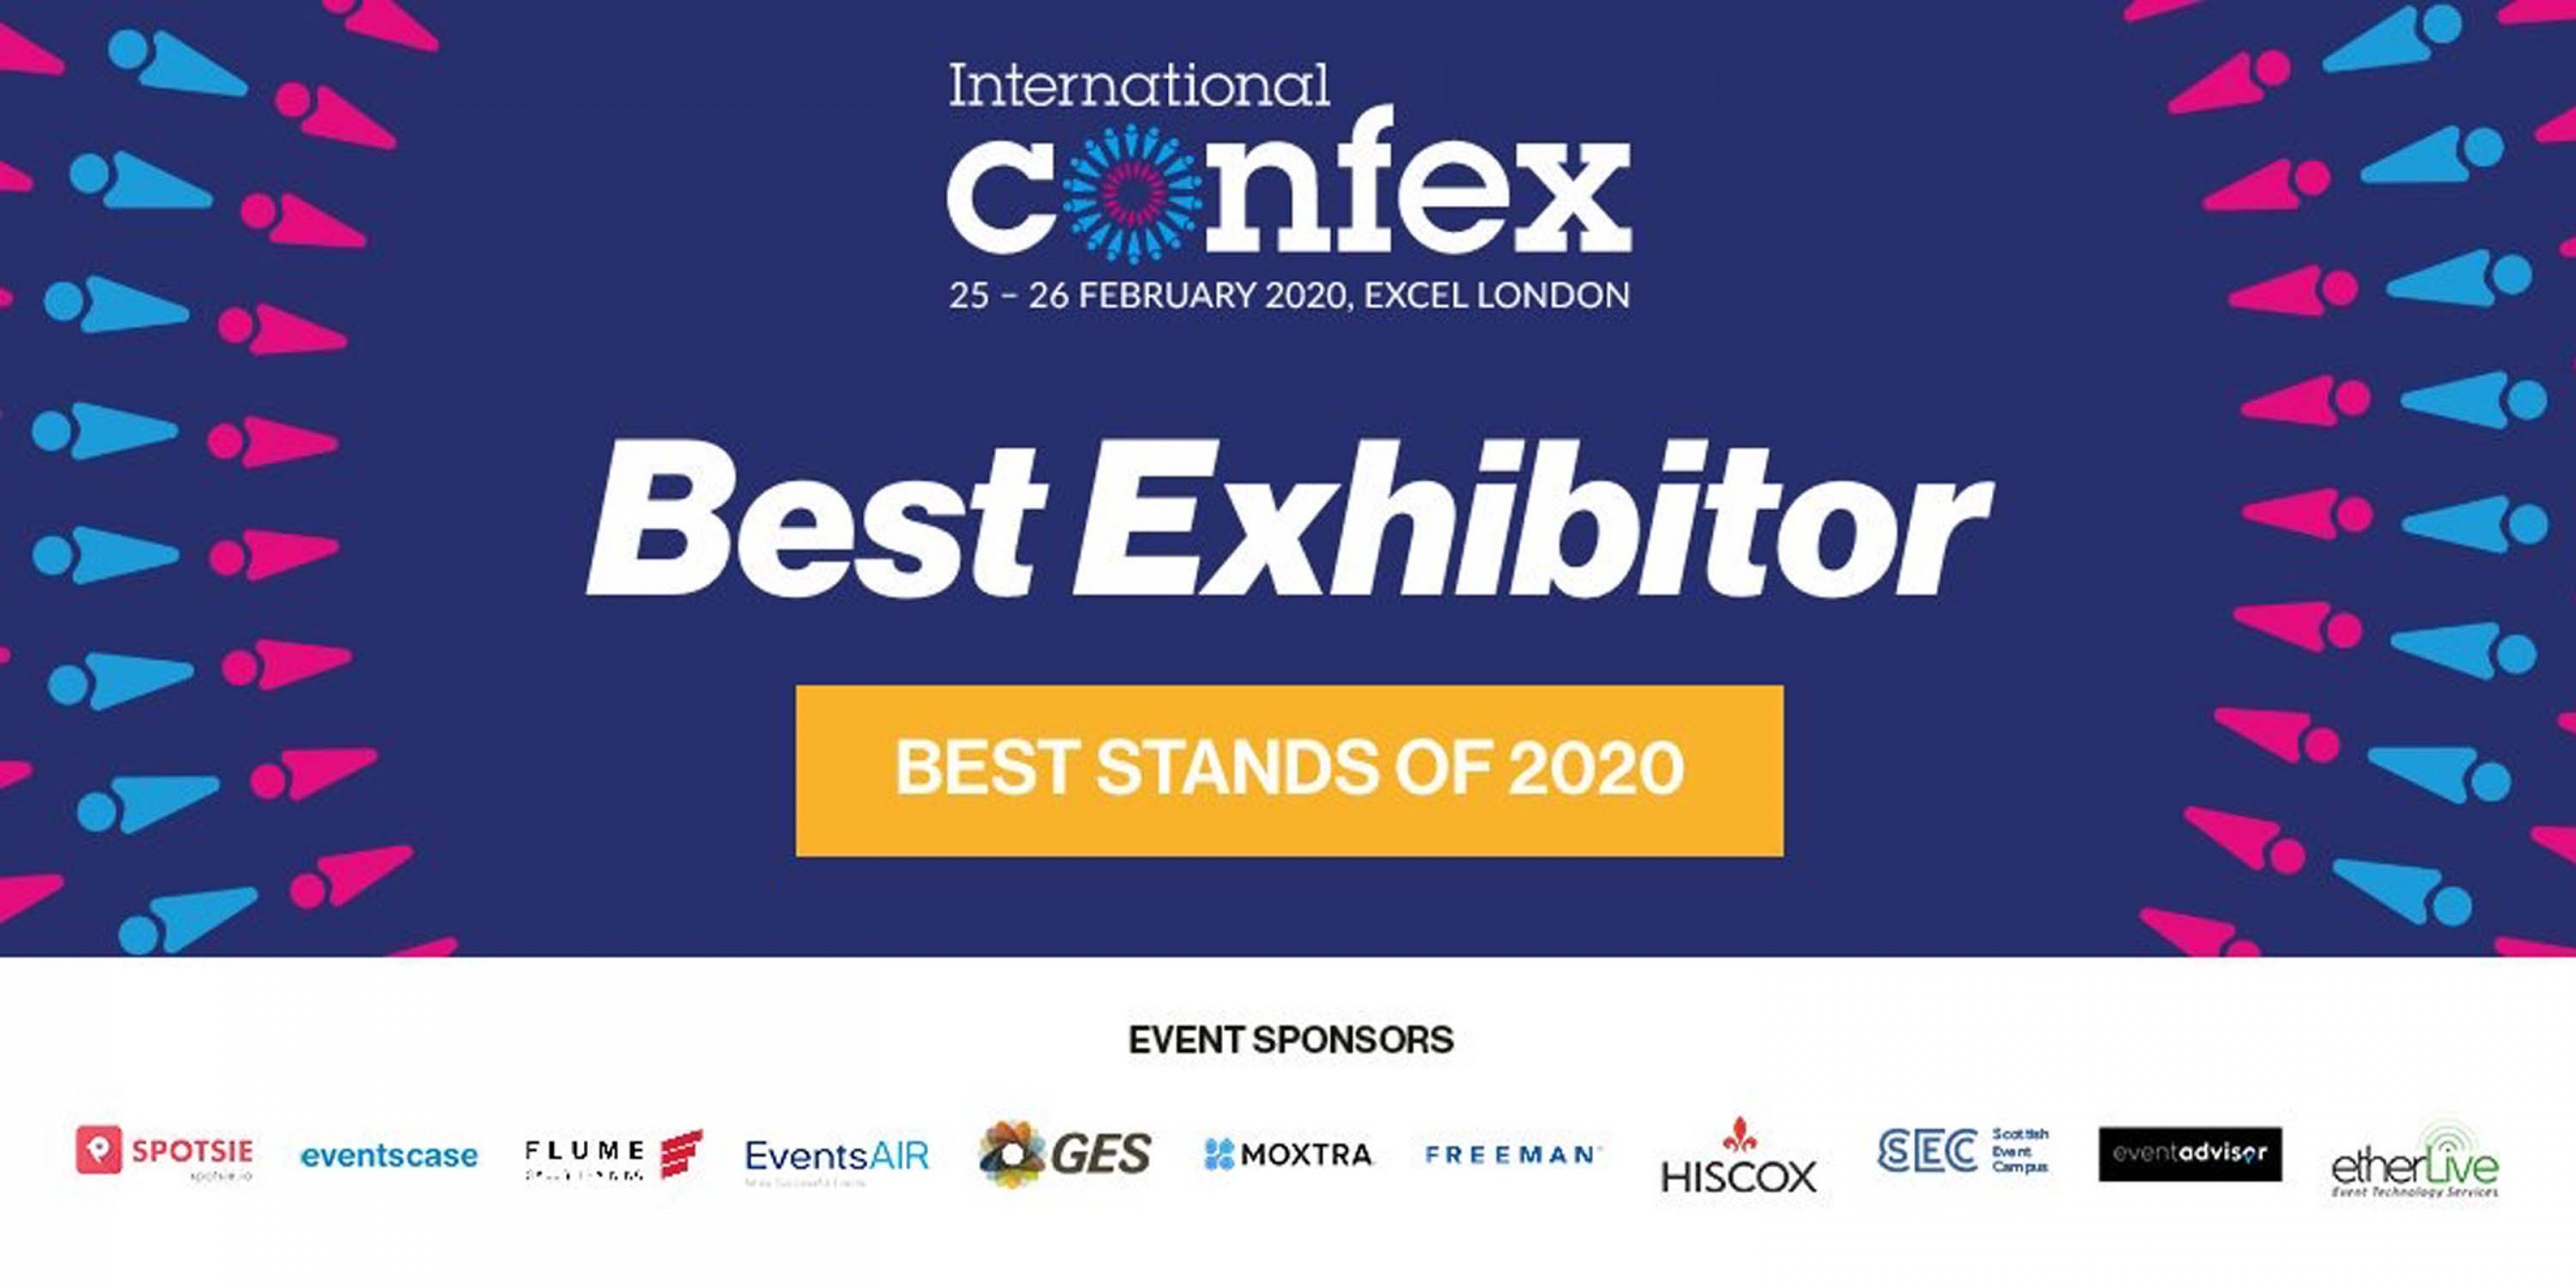 best exhibitor confex clownfish events